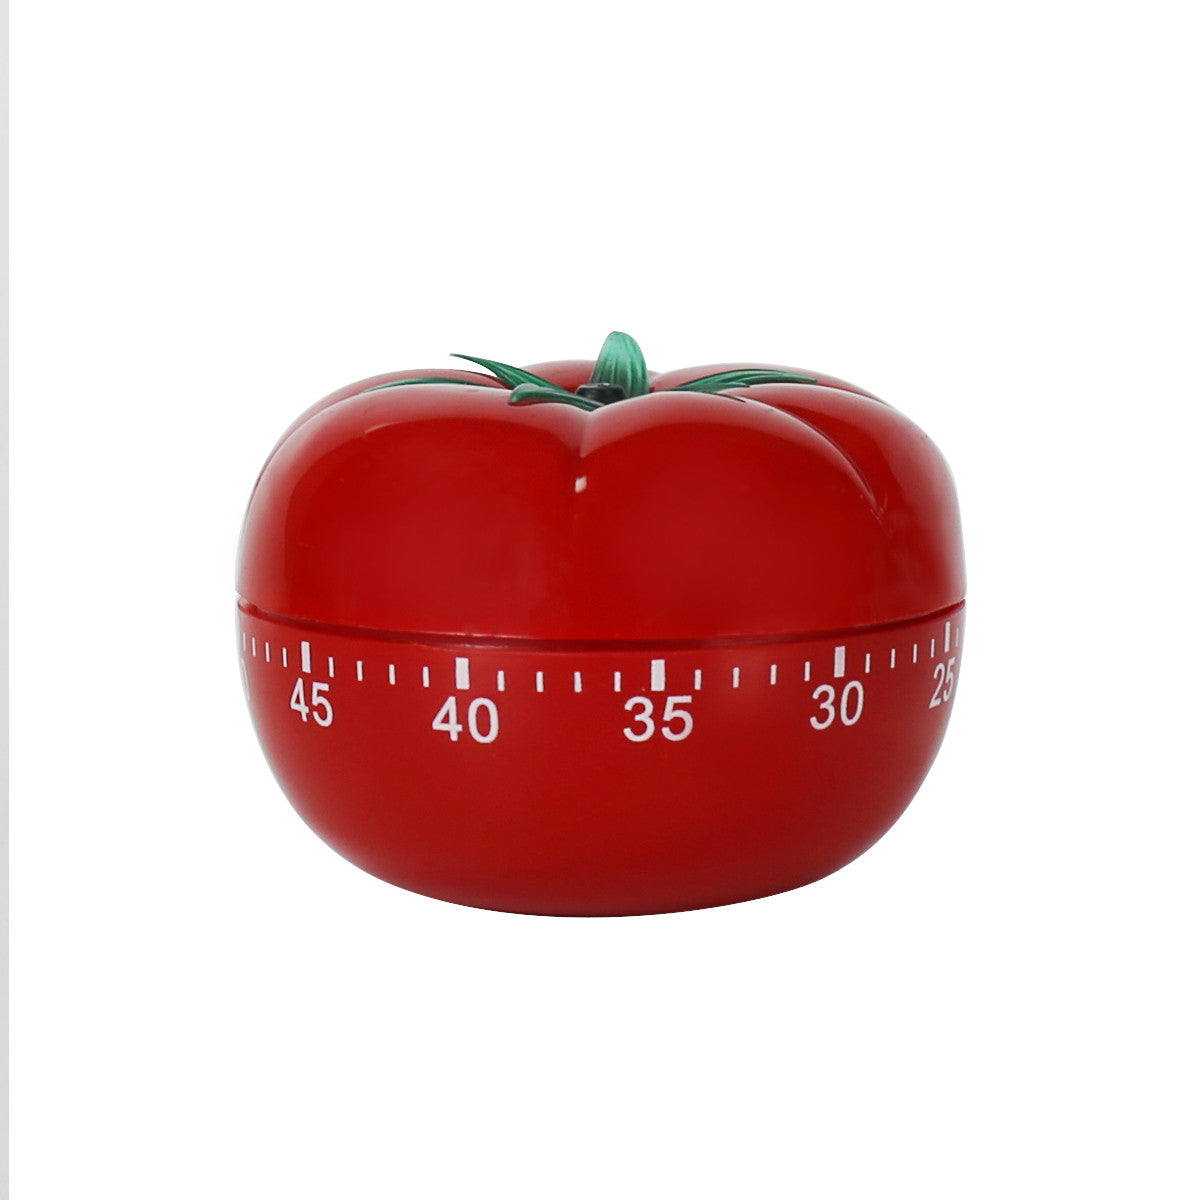 Classic Tomato Cooking Timer Kitchen 60 Minute Mechanical Cute Home Decoration